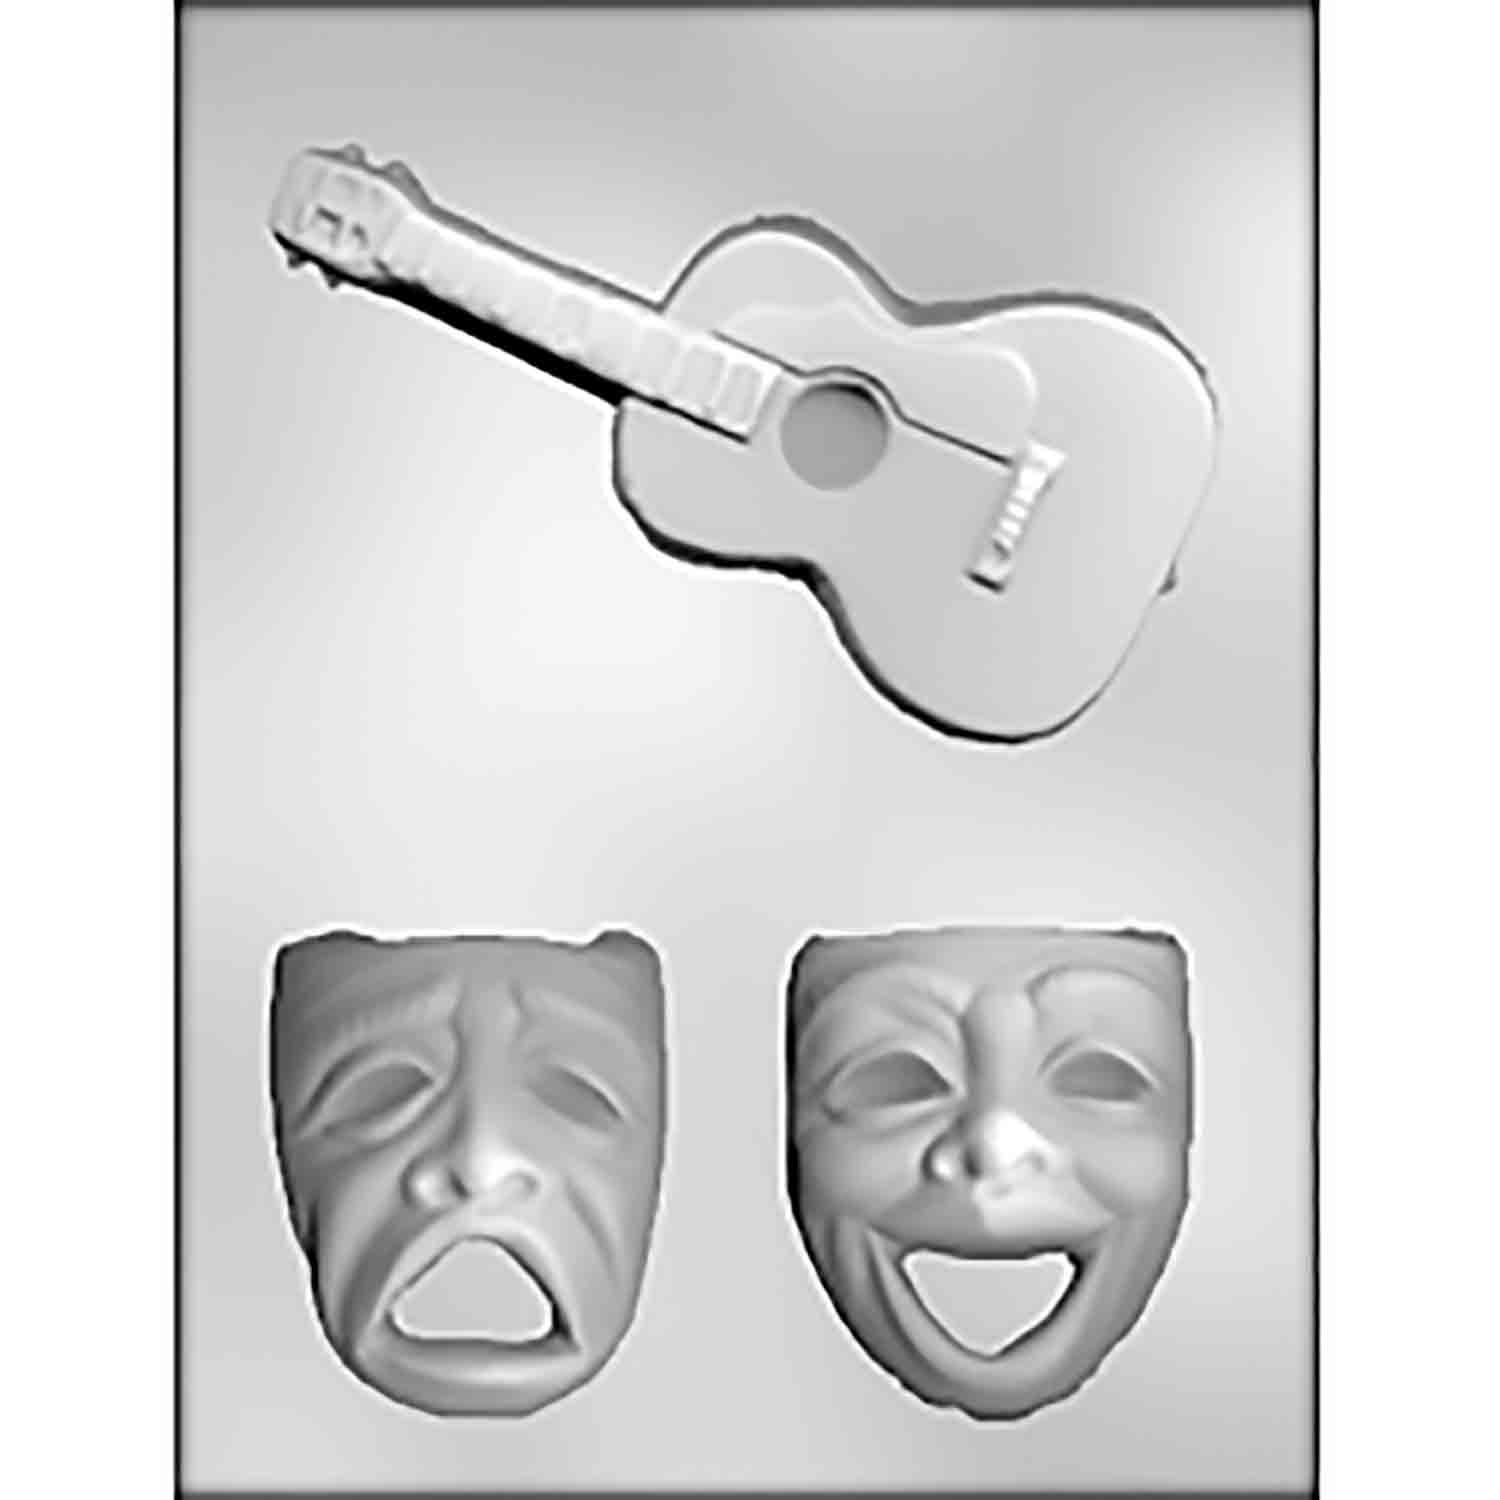 Large Comedy/Tragedy Faces & Guitars Candy Mold